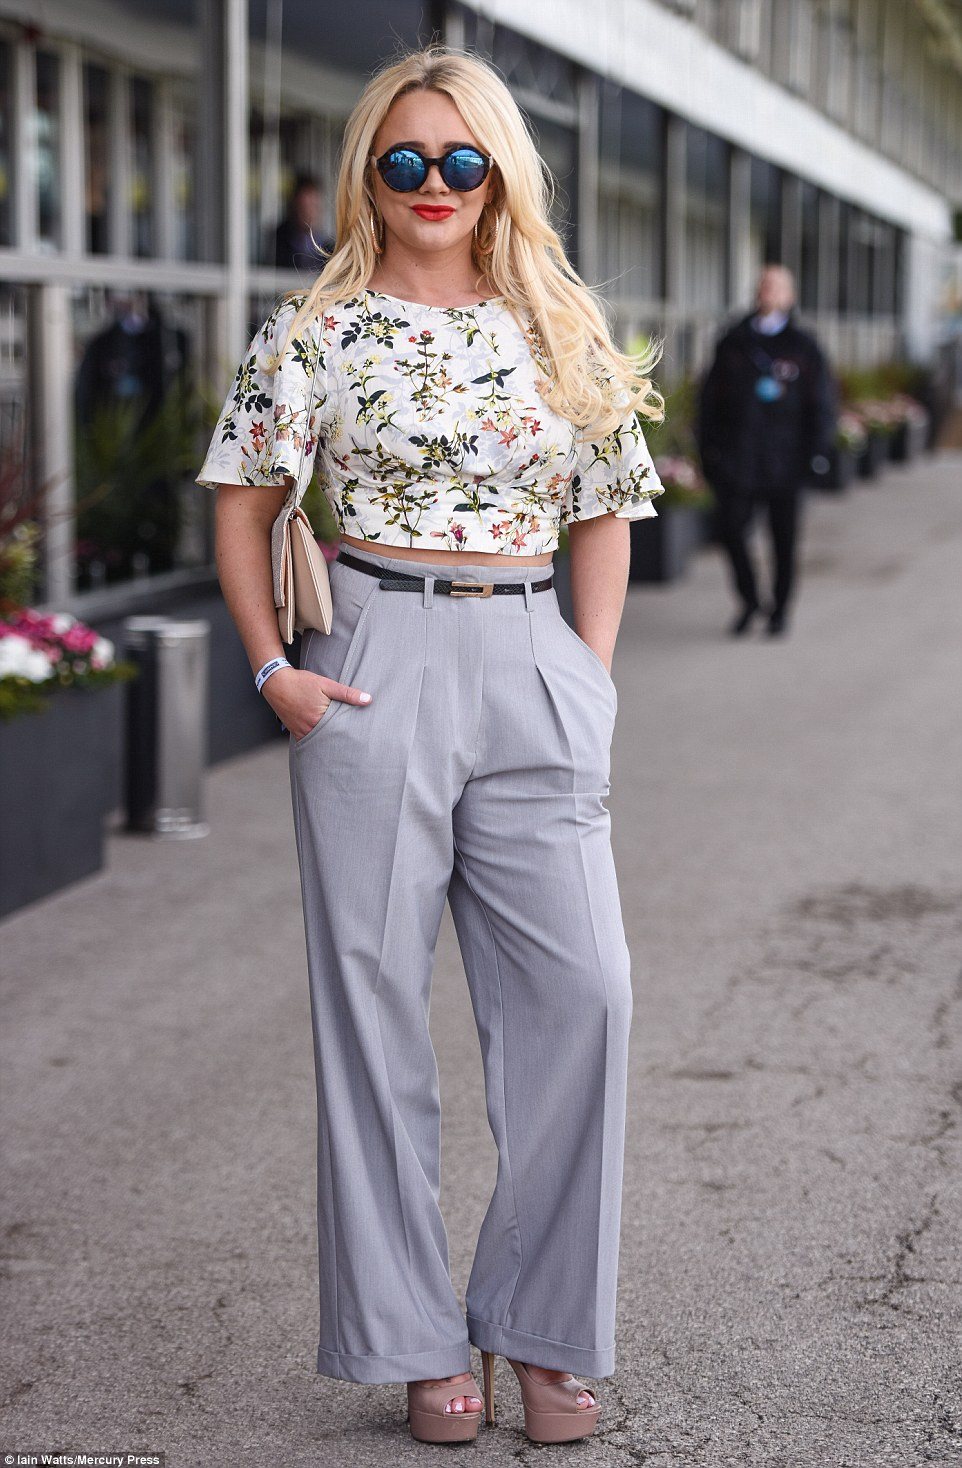 Kirsty-Leigh Porter rocked a pair of wide legged trousers and a summery floral top that showed off a hint of her midriff